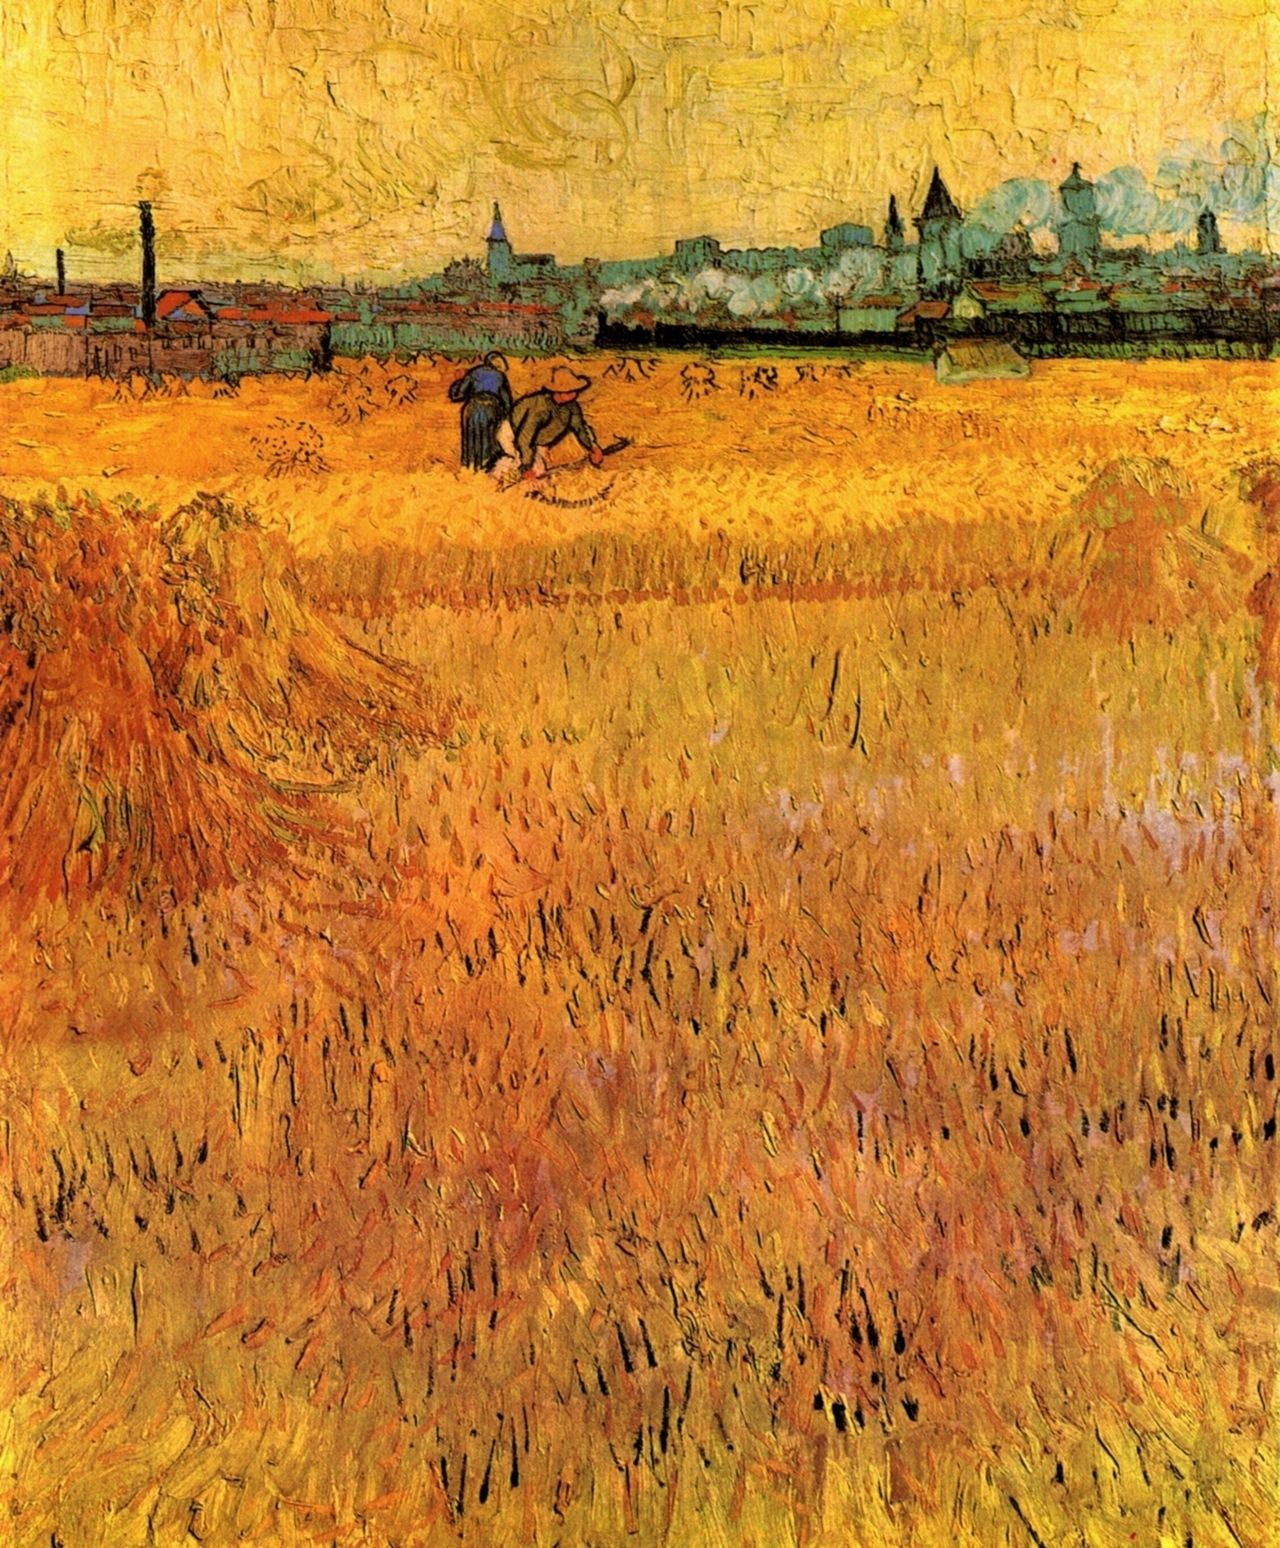 Wheat field with a view of Arles by Van Gogh Giclee Print Repro on Canvas